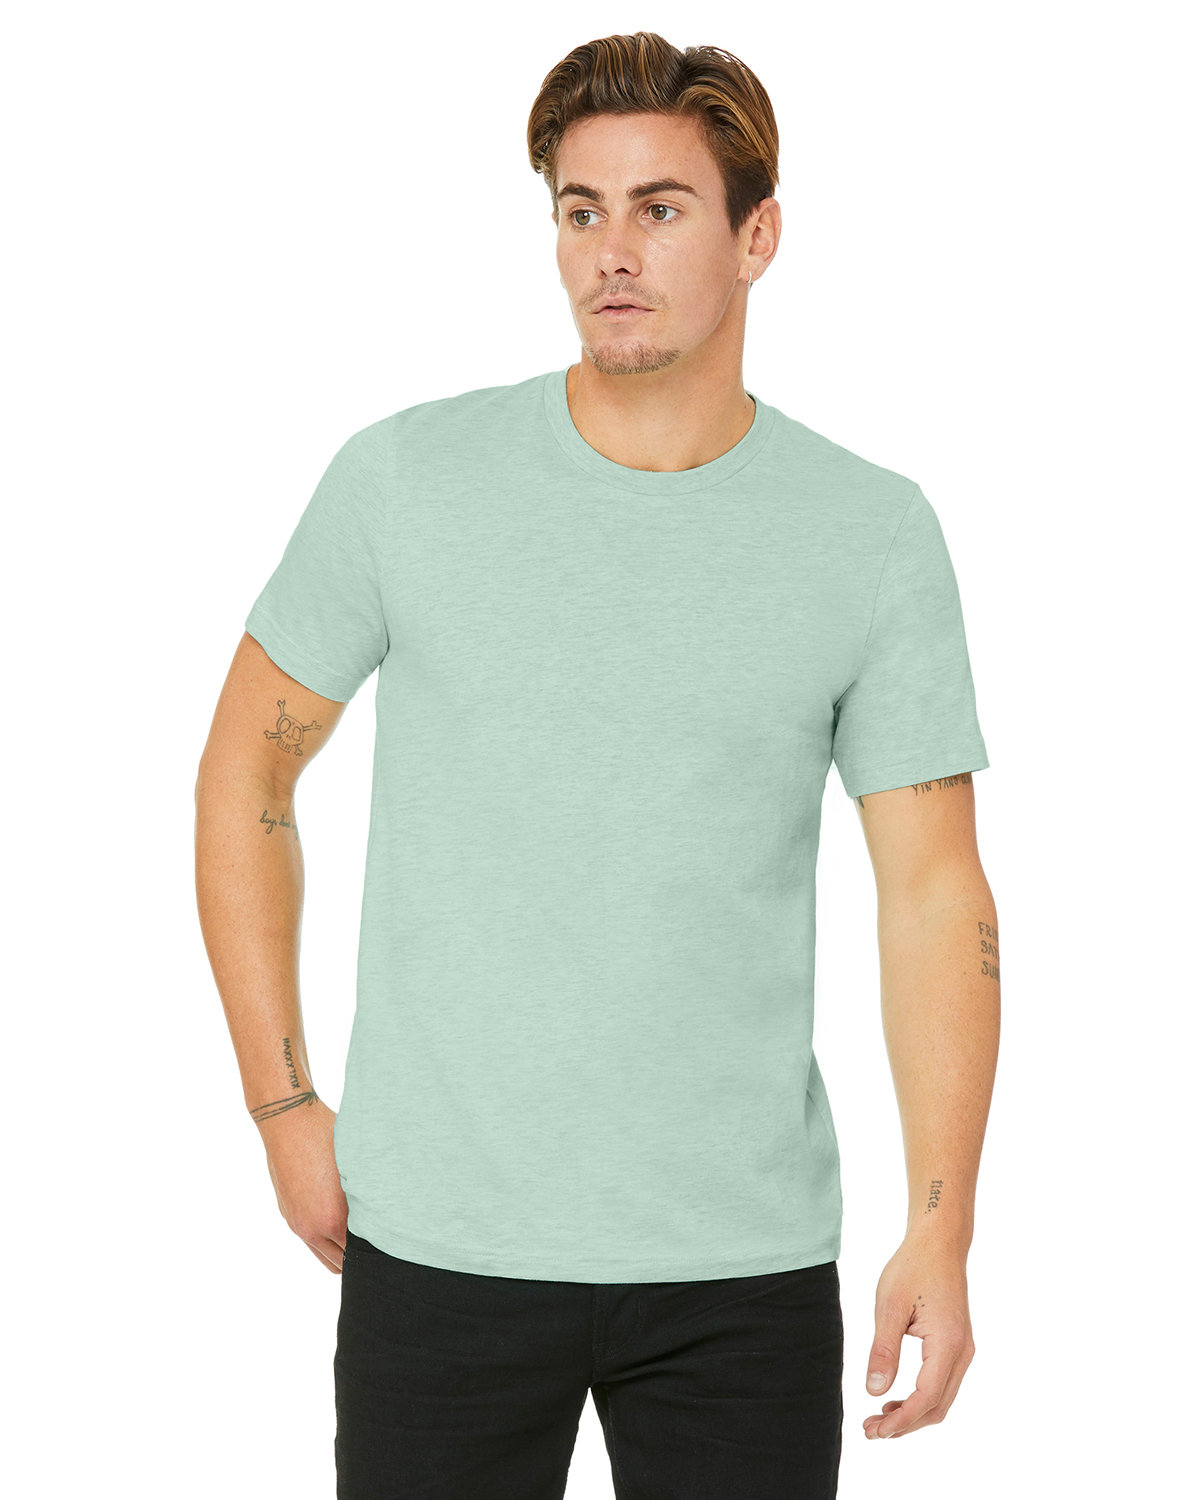 Bella + Canvas Unisex Heather CVC T-Shirt HTHR PRISM MINT